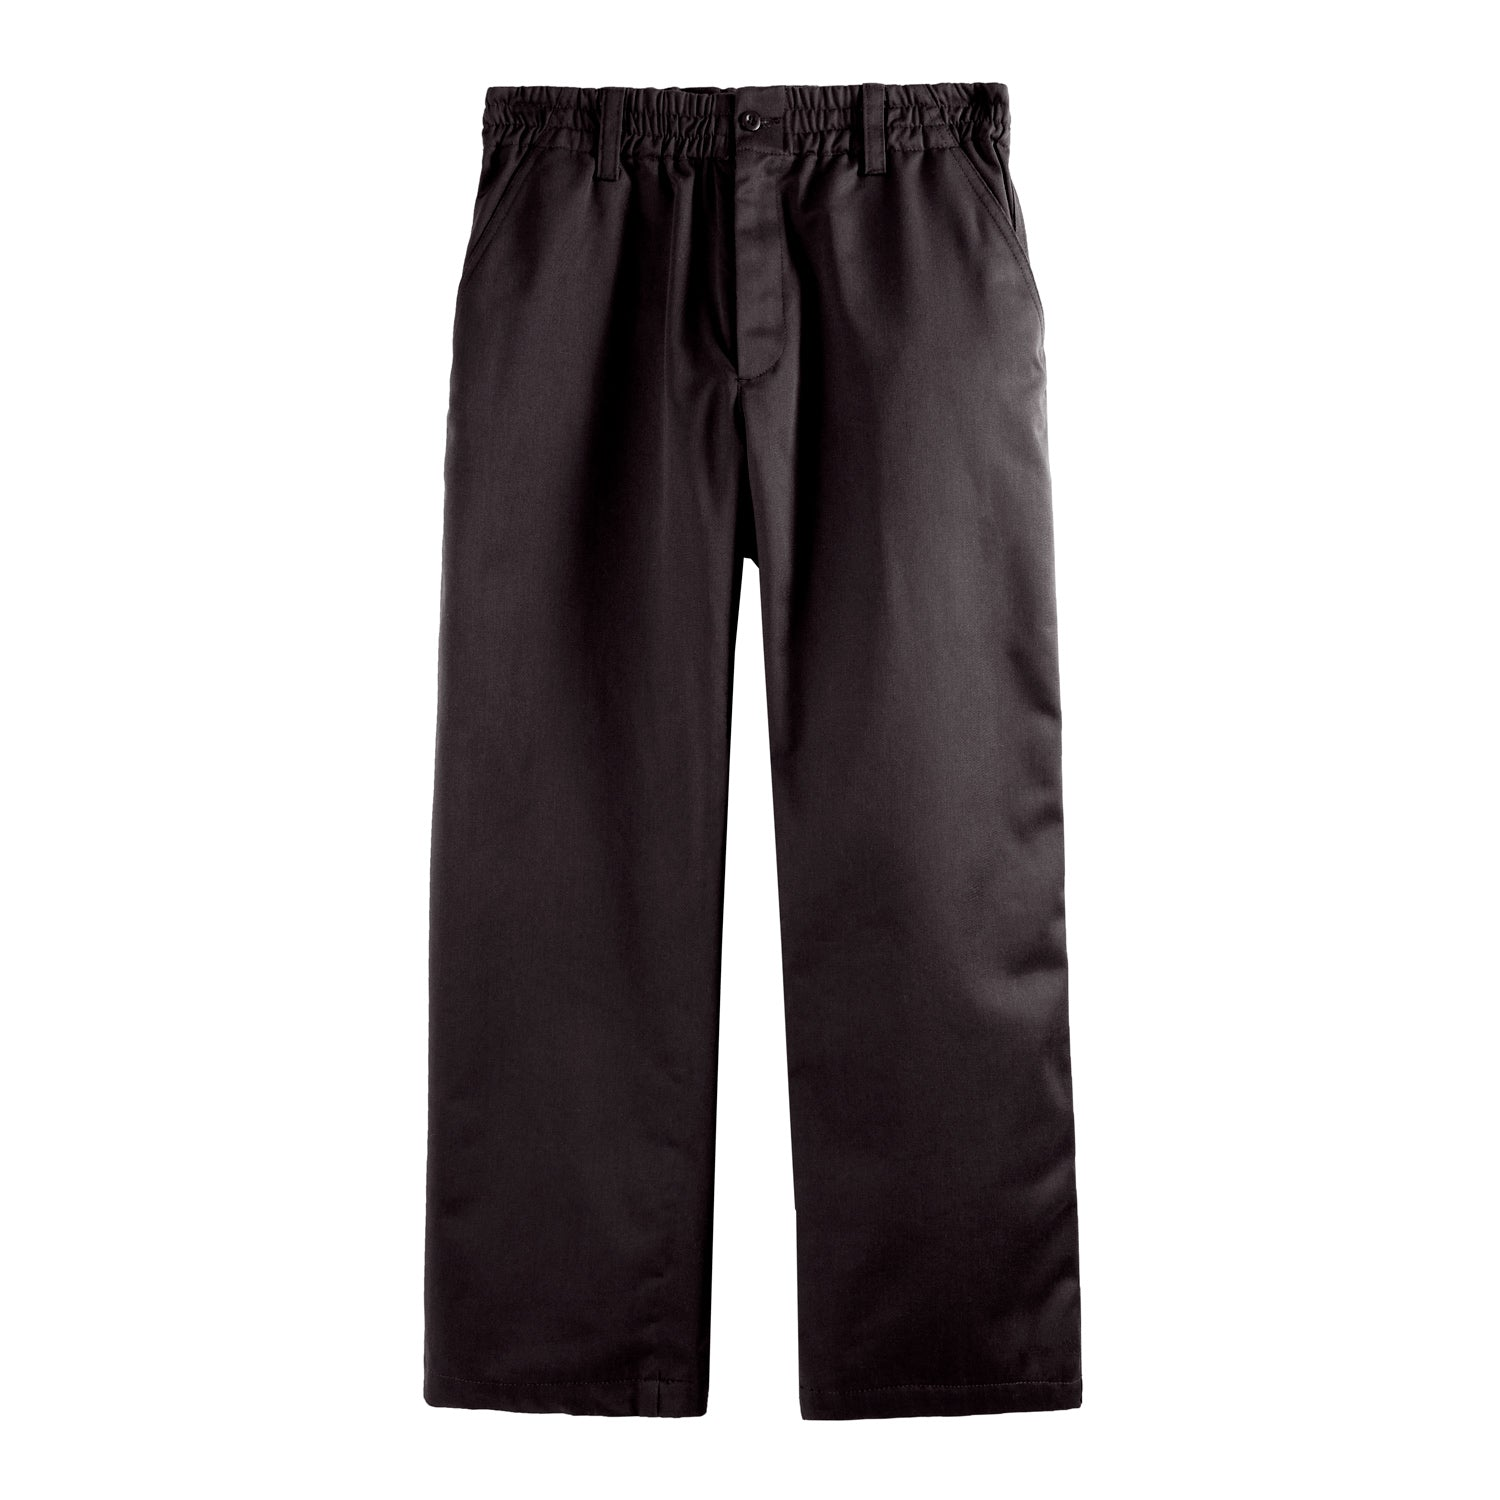 Adjustable Work Pants